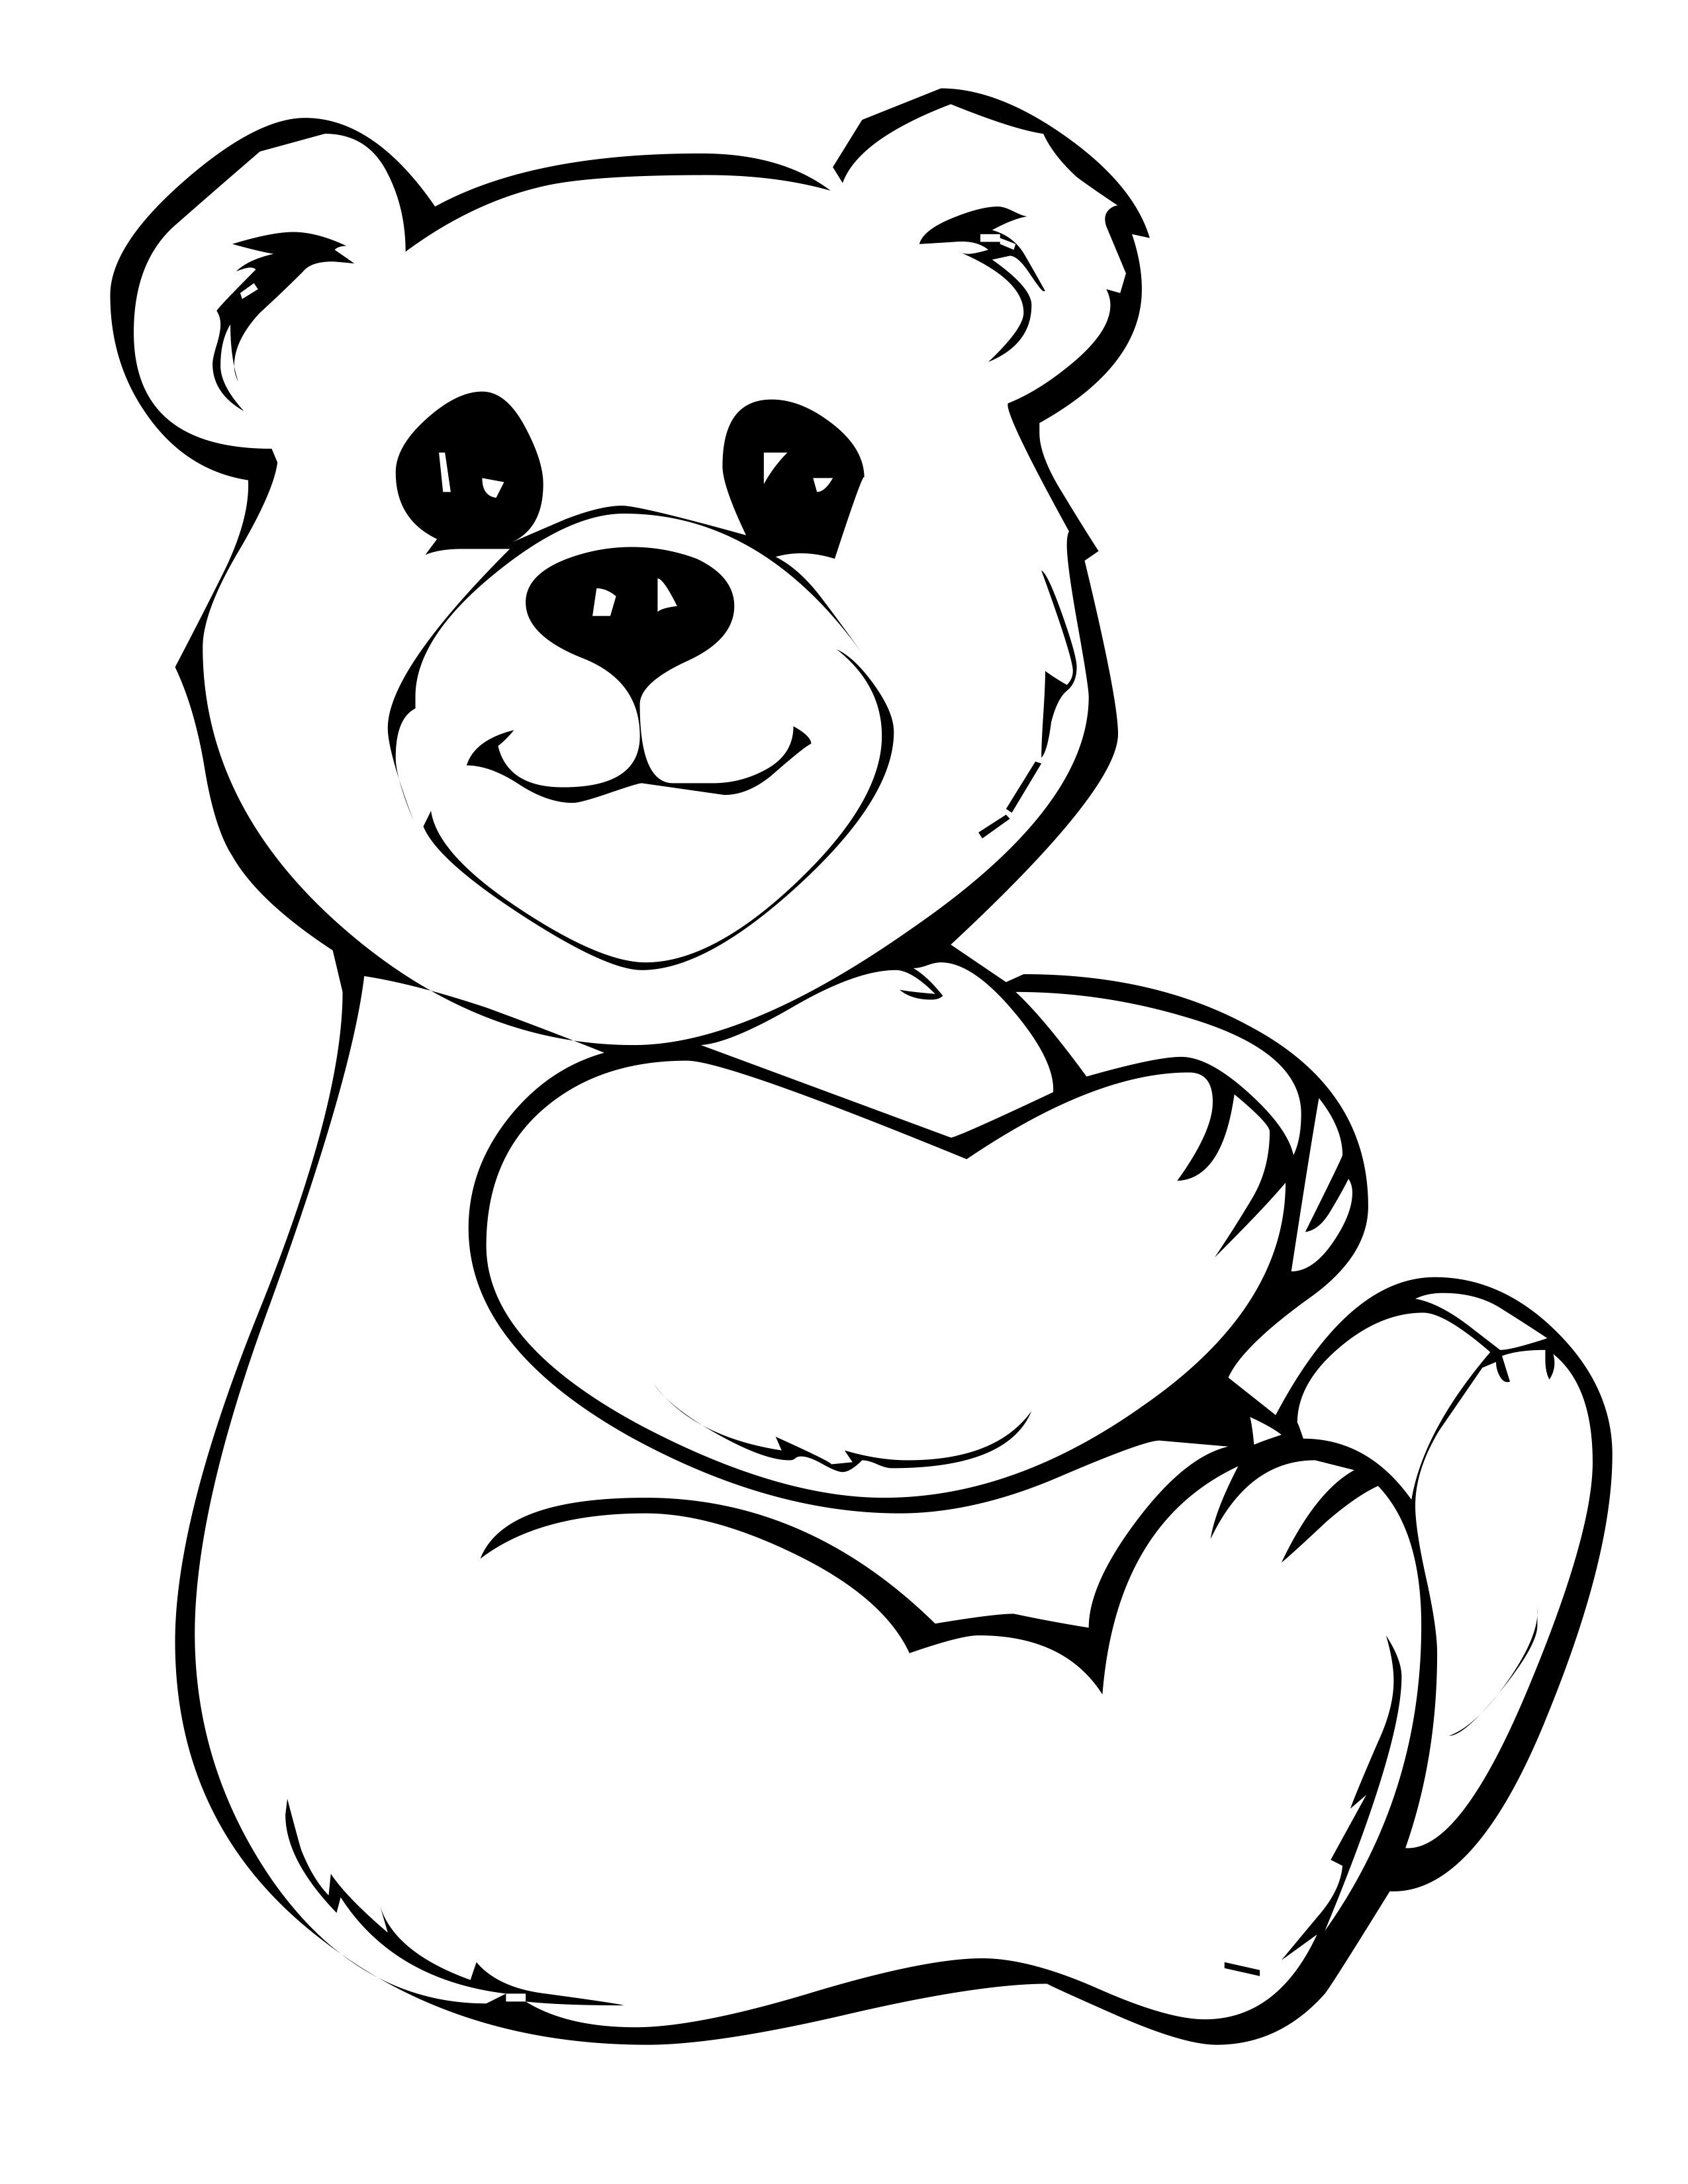 printable coloring pages of teddy bears | Study Free Printable Teddy Bear Coloring Pages For Kids ...